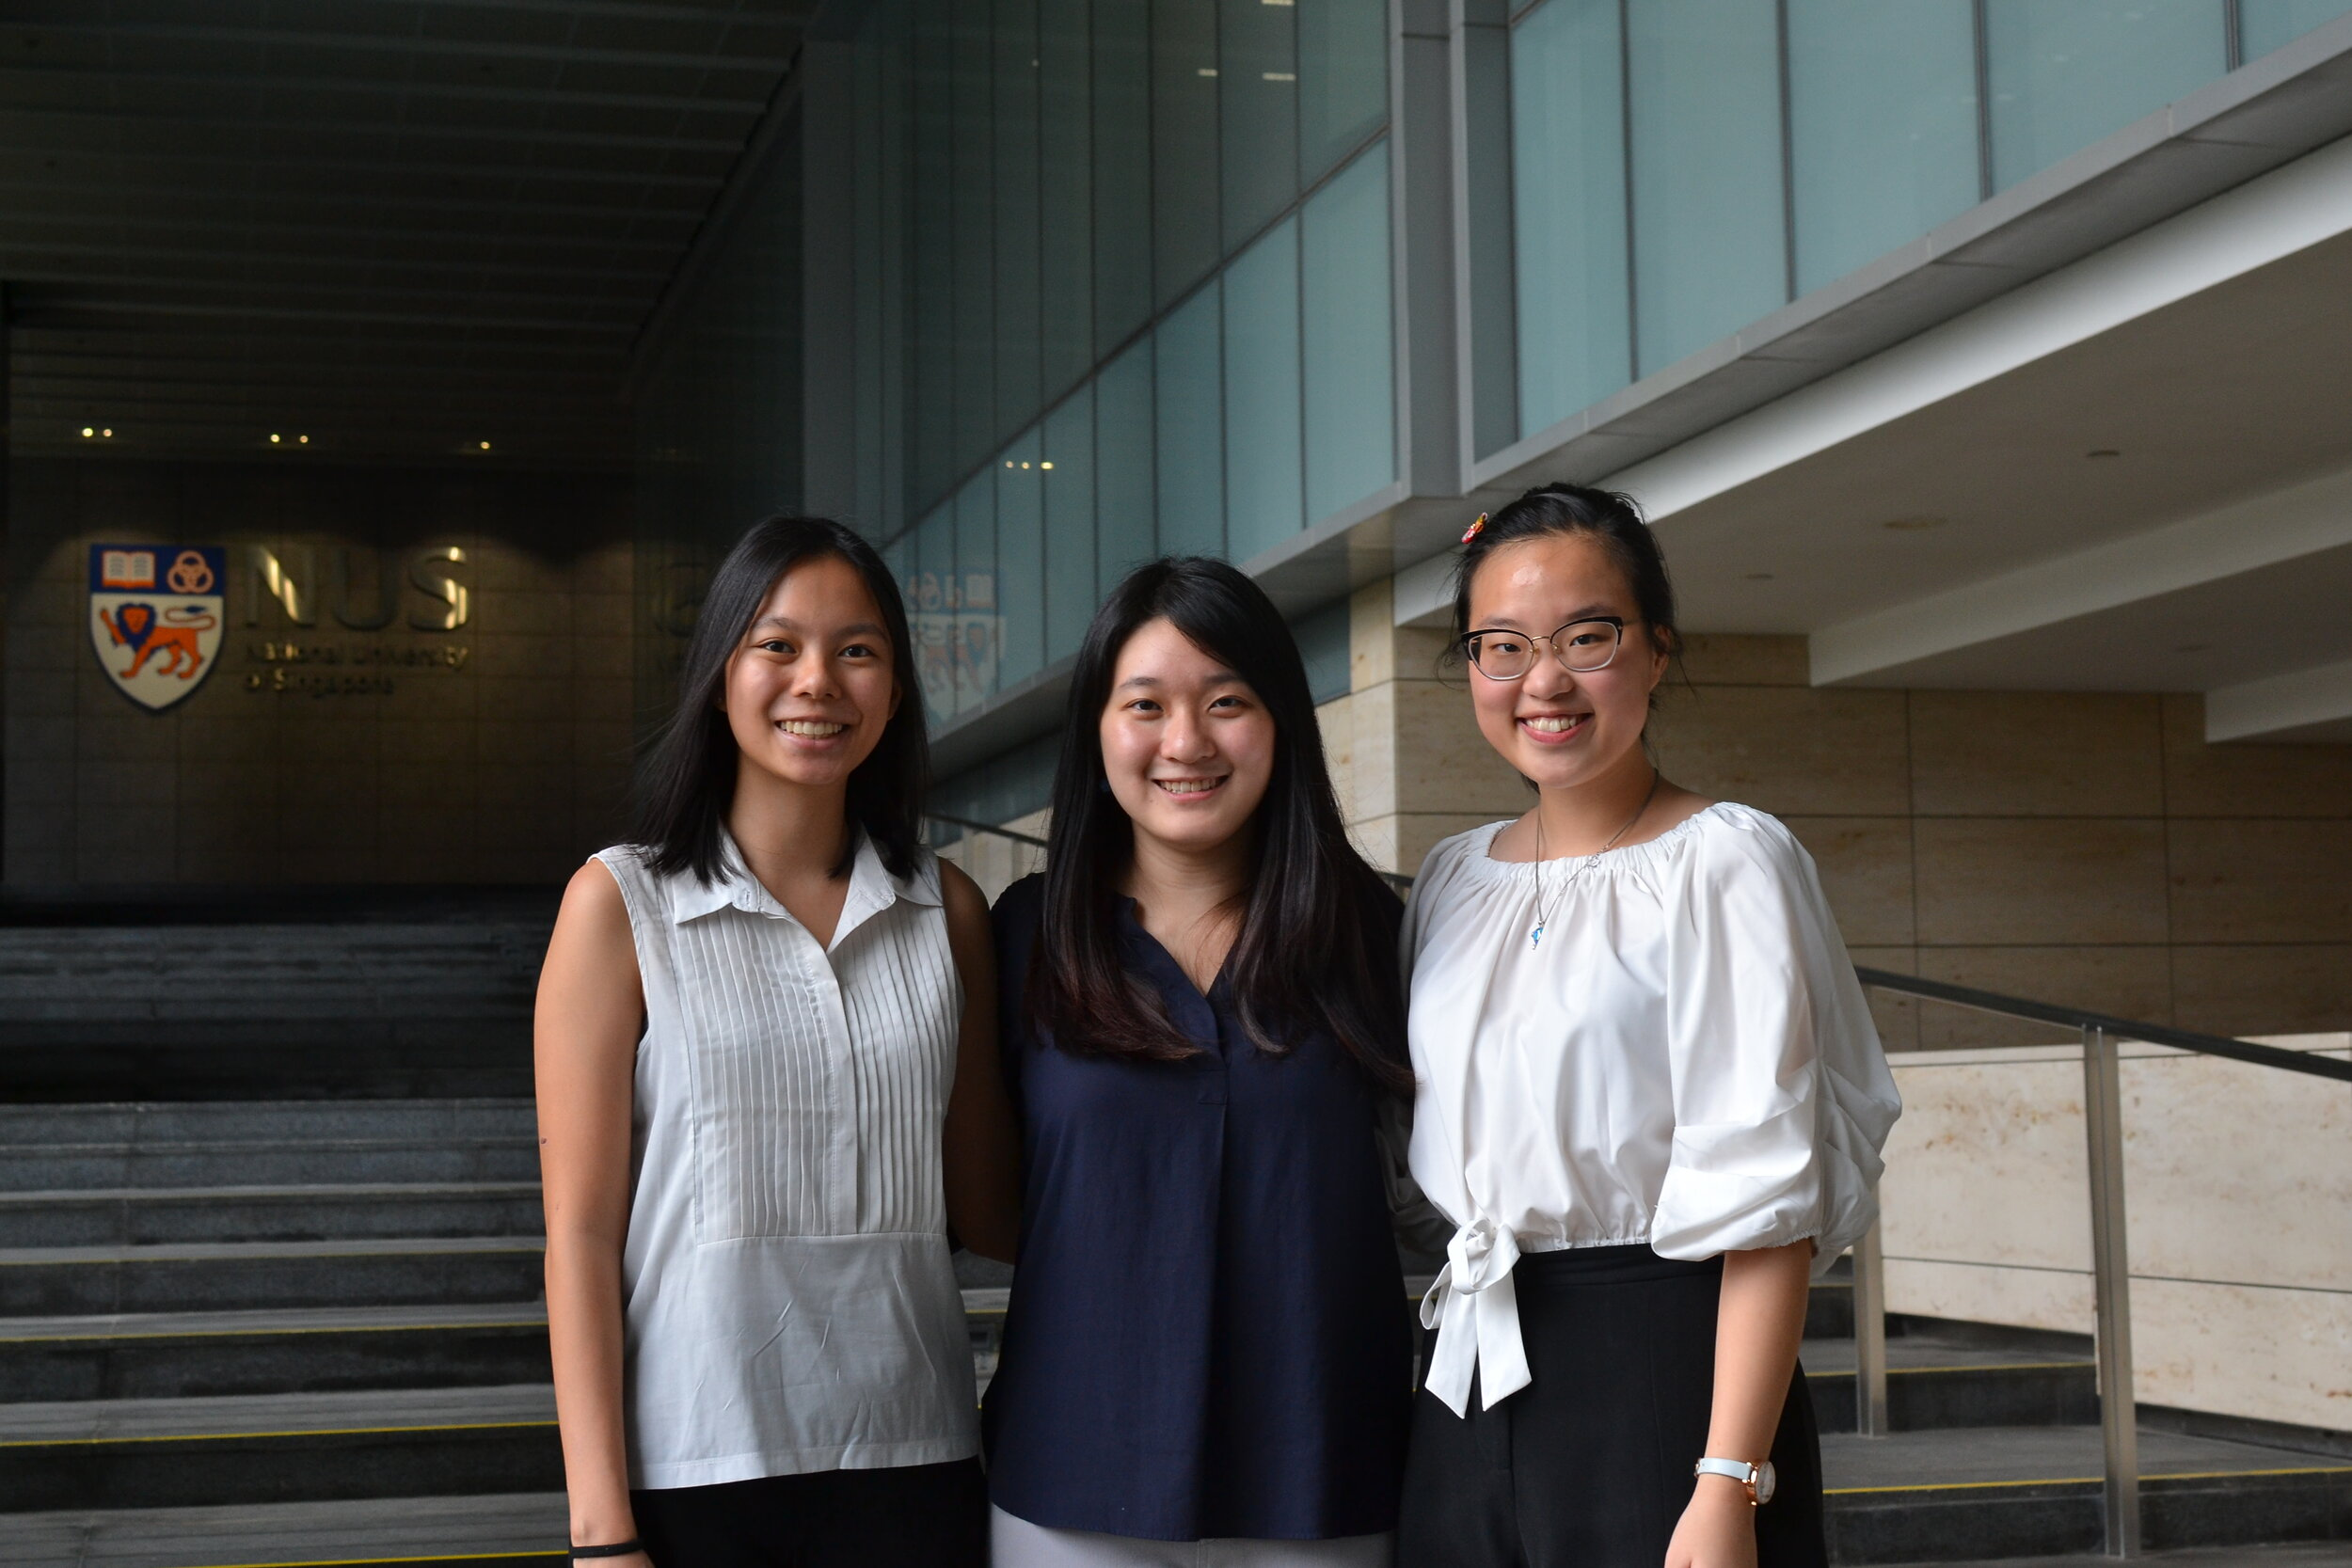 From left to right: Gwyneth Kong (Co-Director), Goh Yi Man (Co-director), Lim Kia Teng (Co-director)